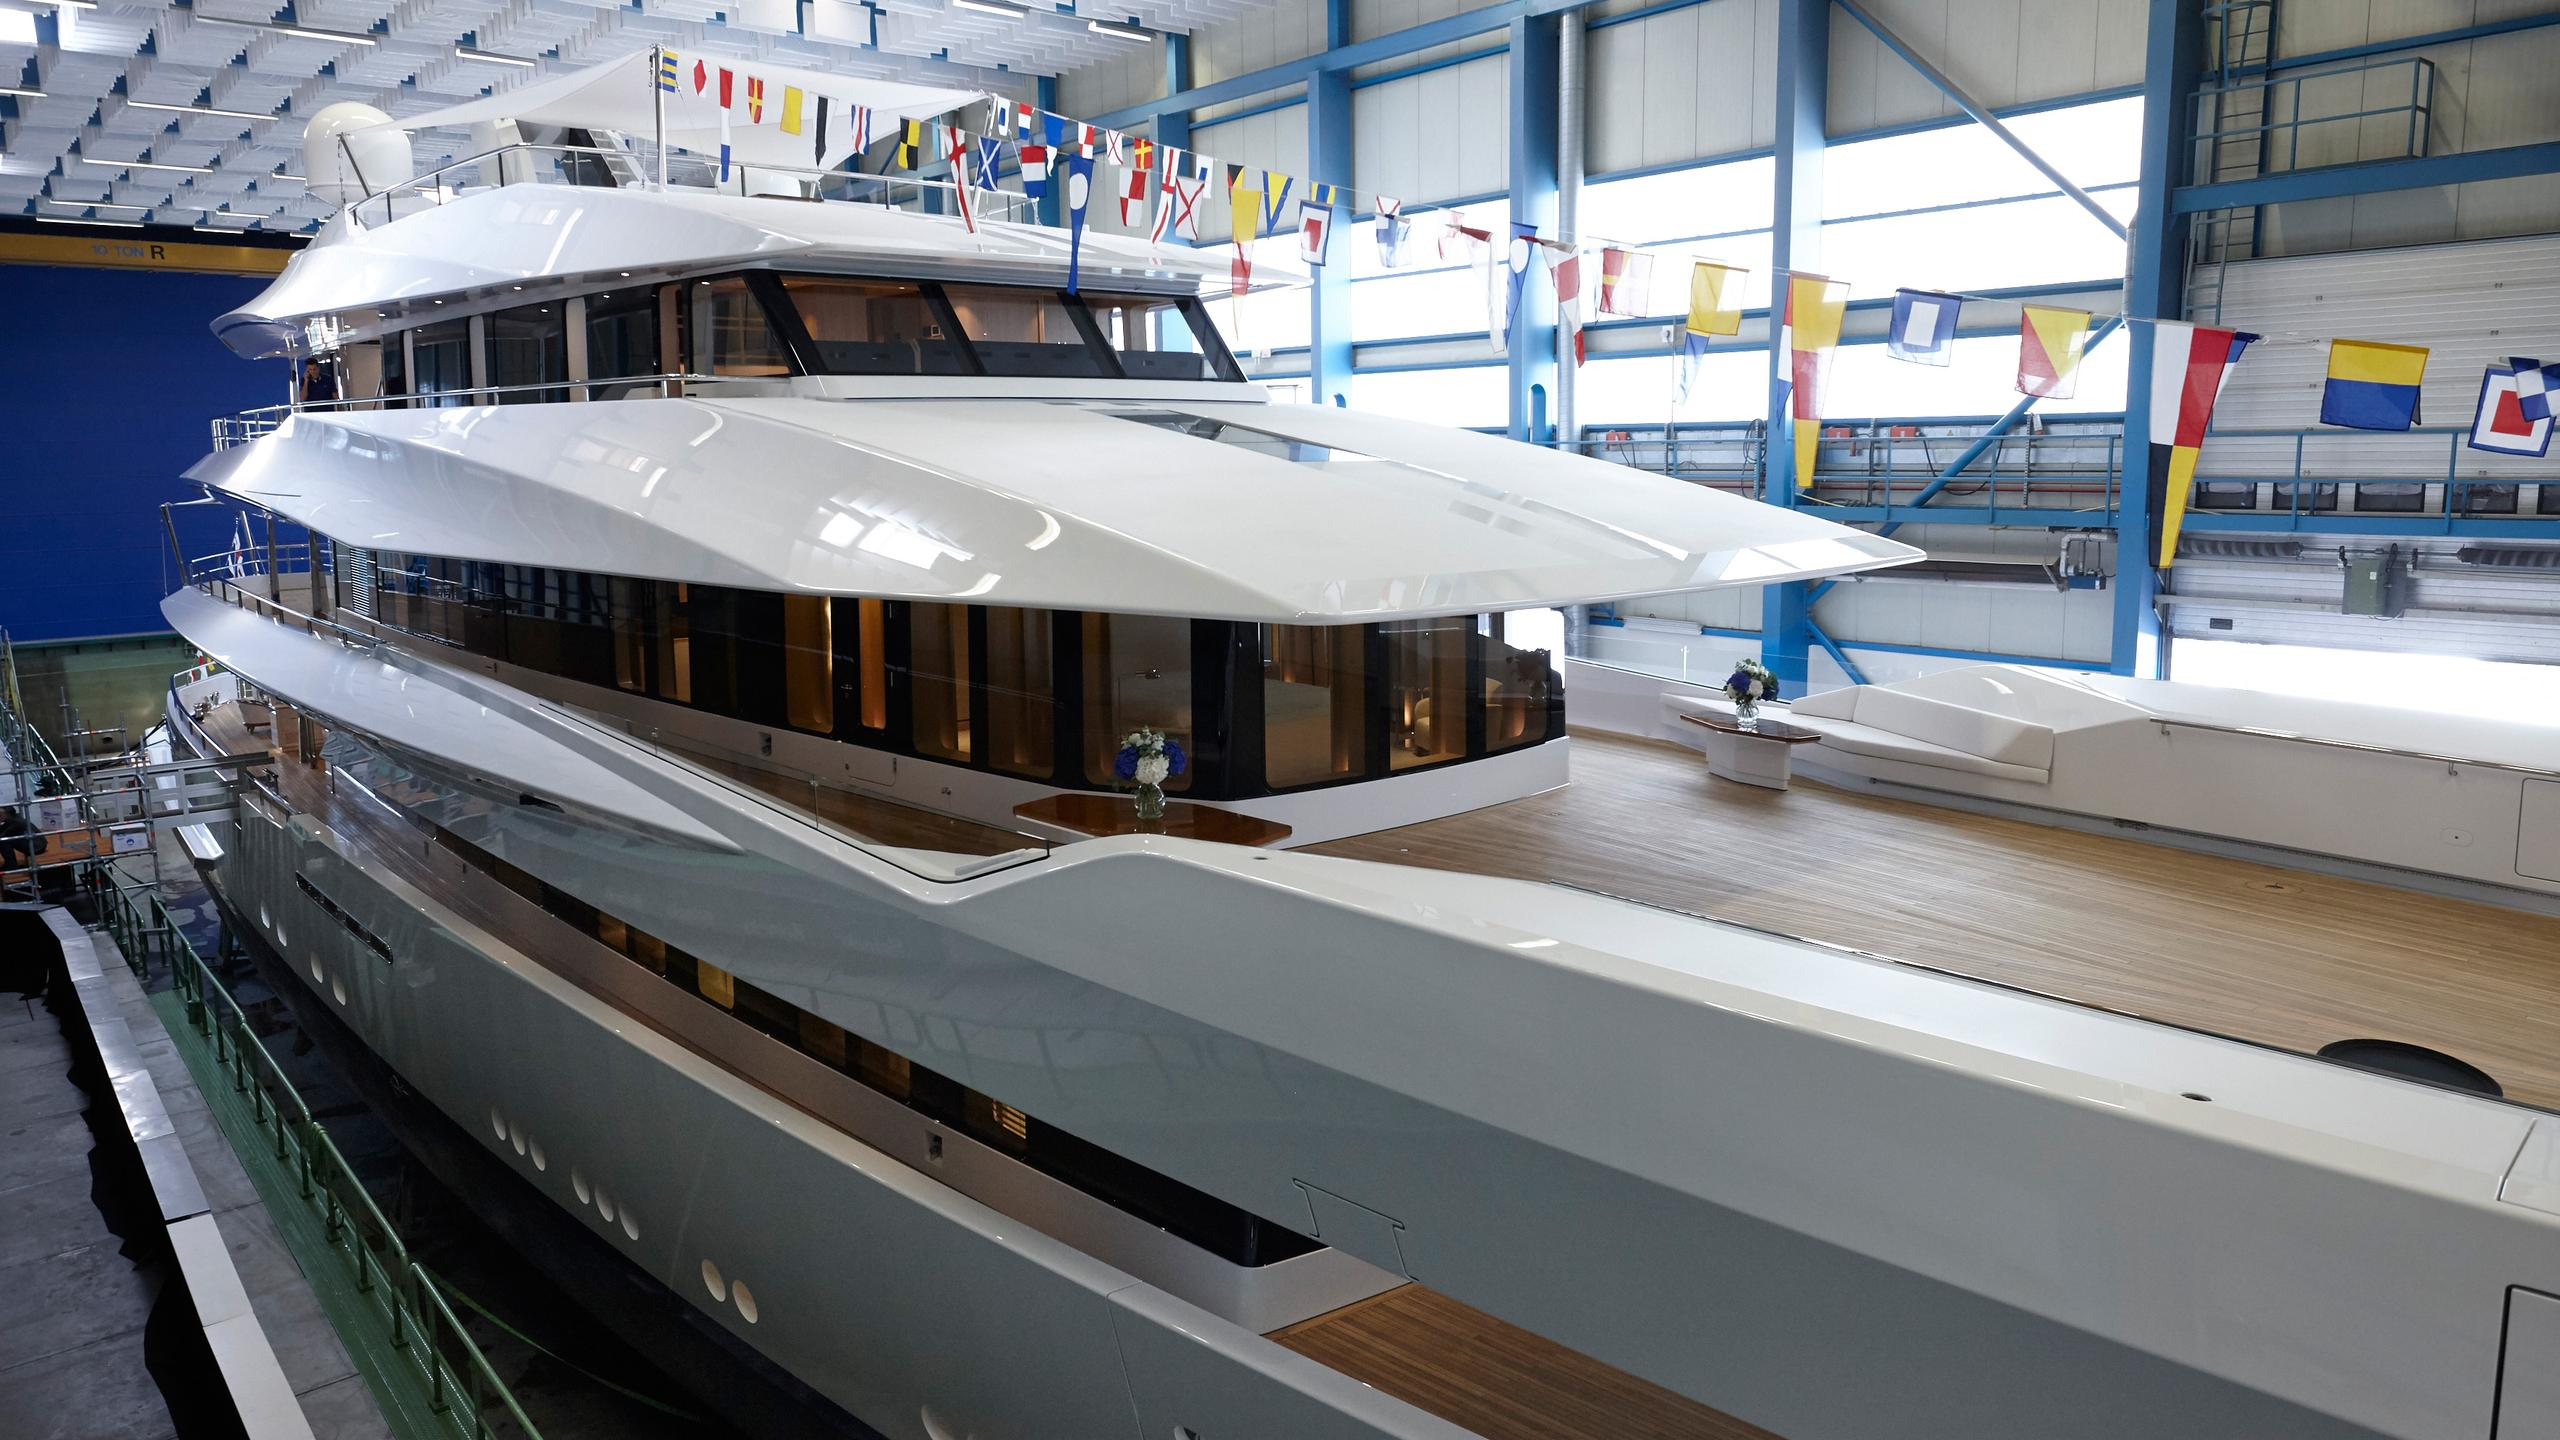 joy-motor-yacht-feadship-2016-70m-shipyard-shed-detail-half-profile